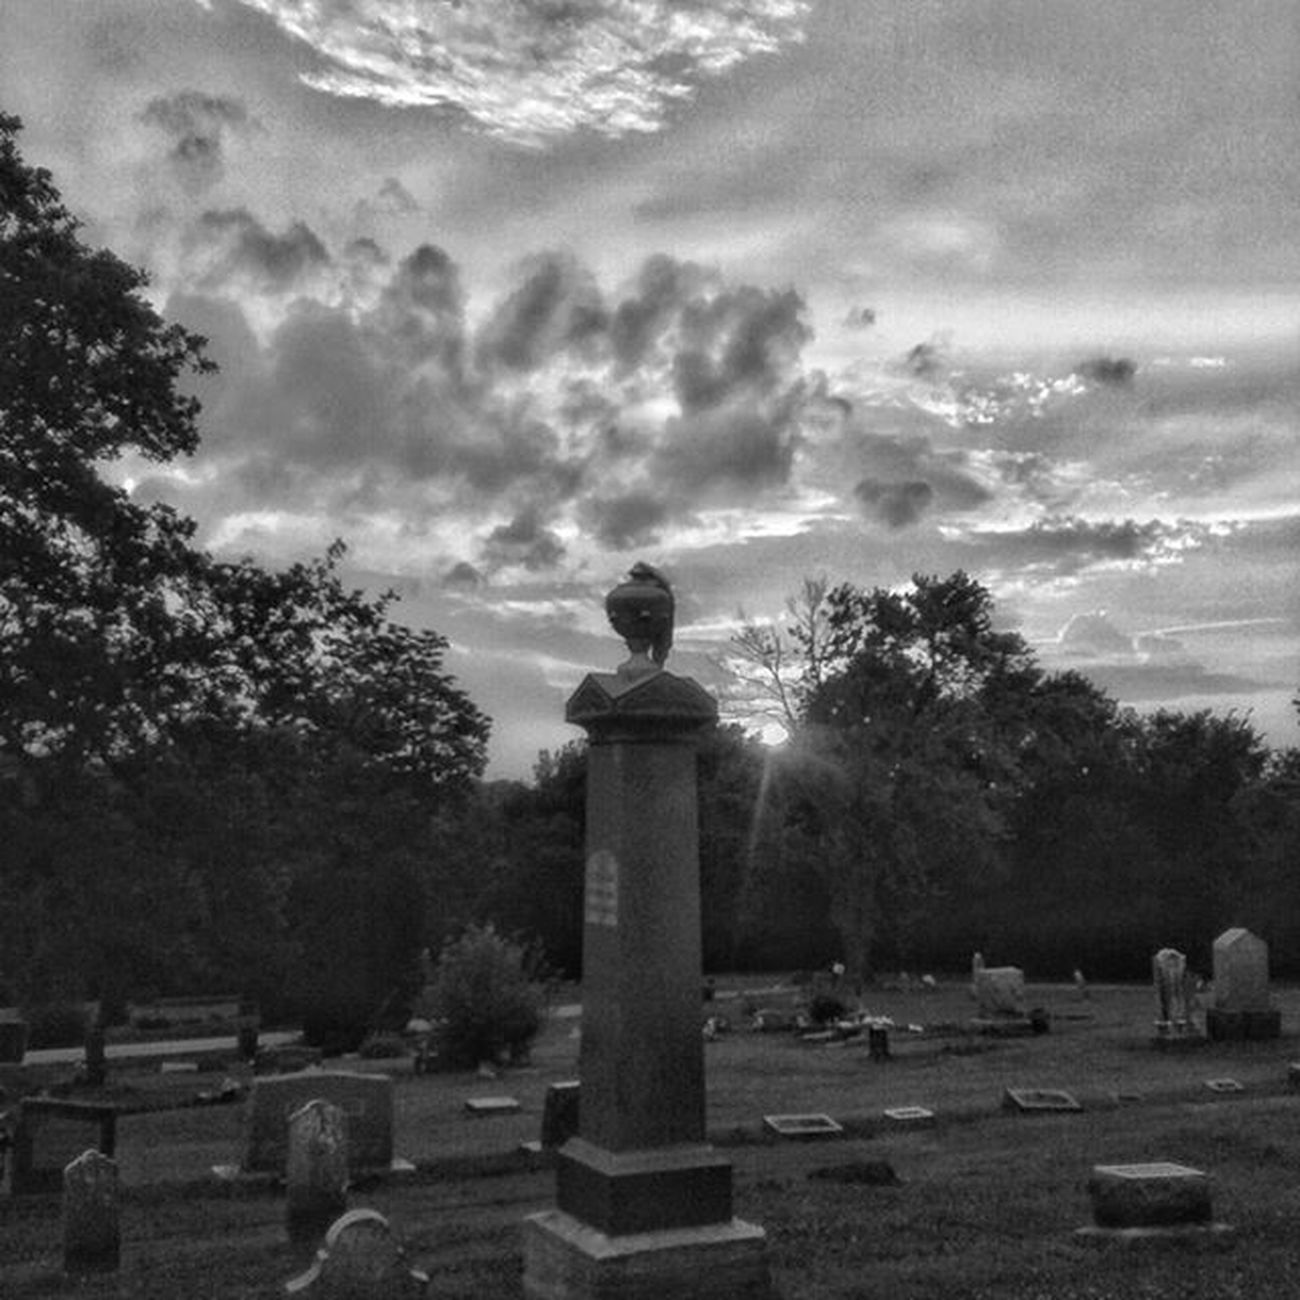 Nothing quite like a bnw sunset in graveyard.... Ks_pride Graveyard_dead Kansasphotographer Kansasphotos Ipulledoverforthis World_bnw Bnw_life Bnw_sunset Bnw Bnw_captures Sunsets_oftheworld Sunsets_captures Summer Sun Grave Sunset Atchison Kansas Fuckyeah